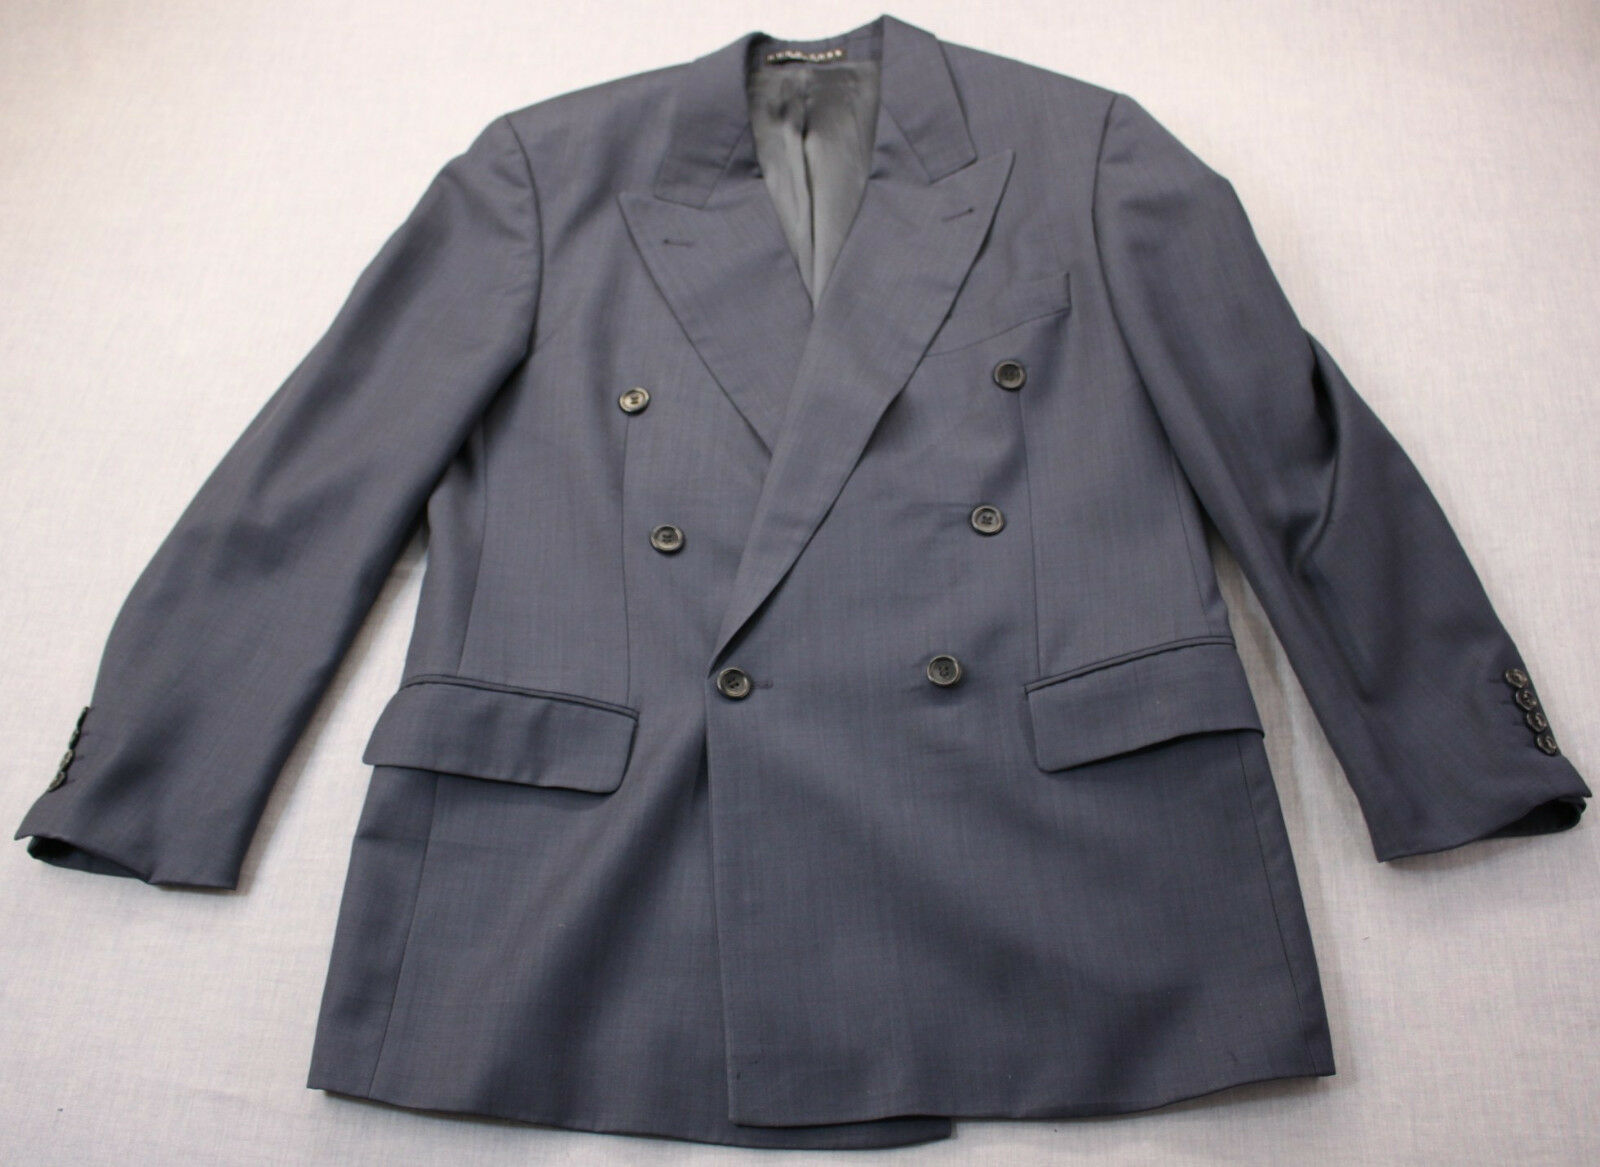 Hugo Boss USA Navy Tasmanian Super 100s Wool Double Breasted Sportcoat Blazer 42